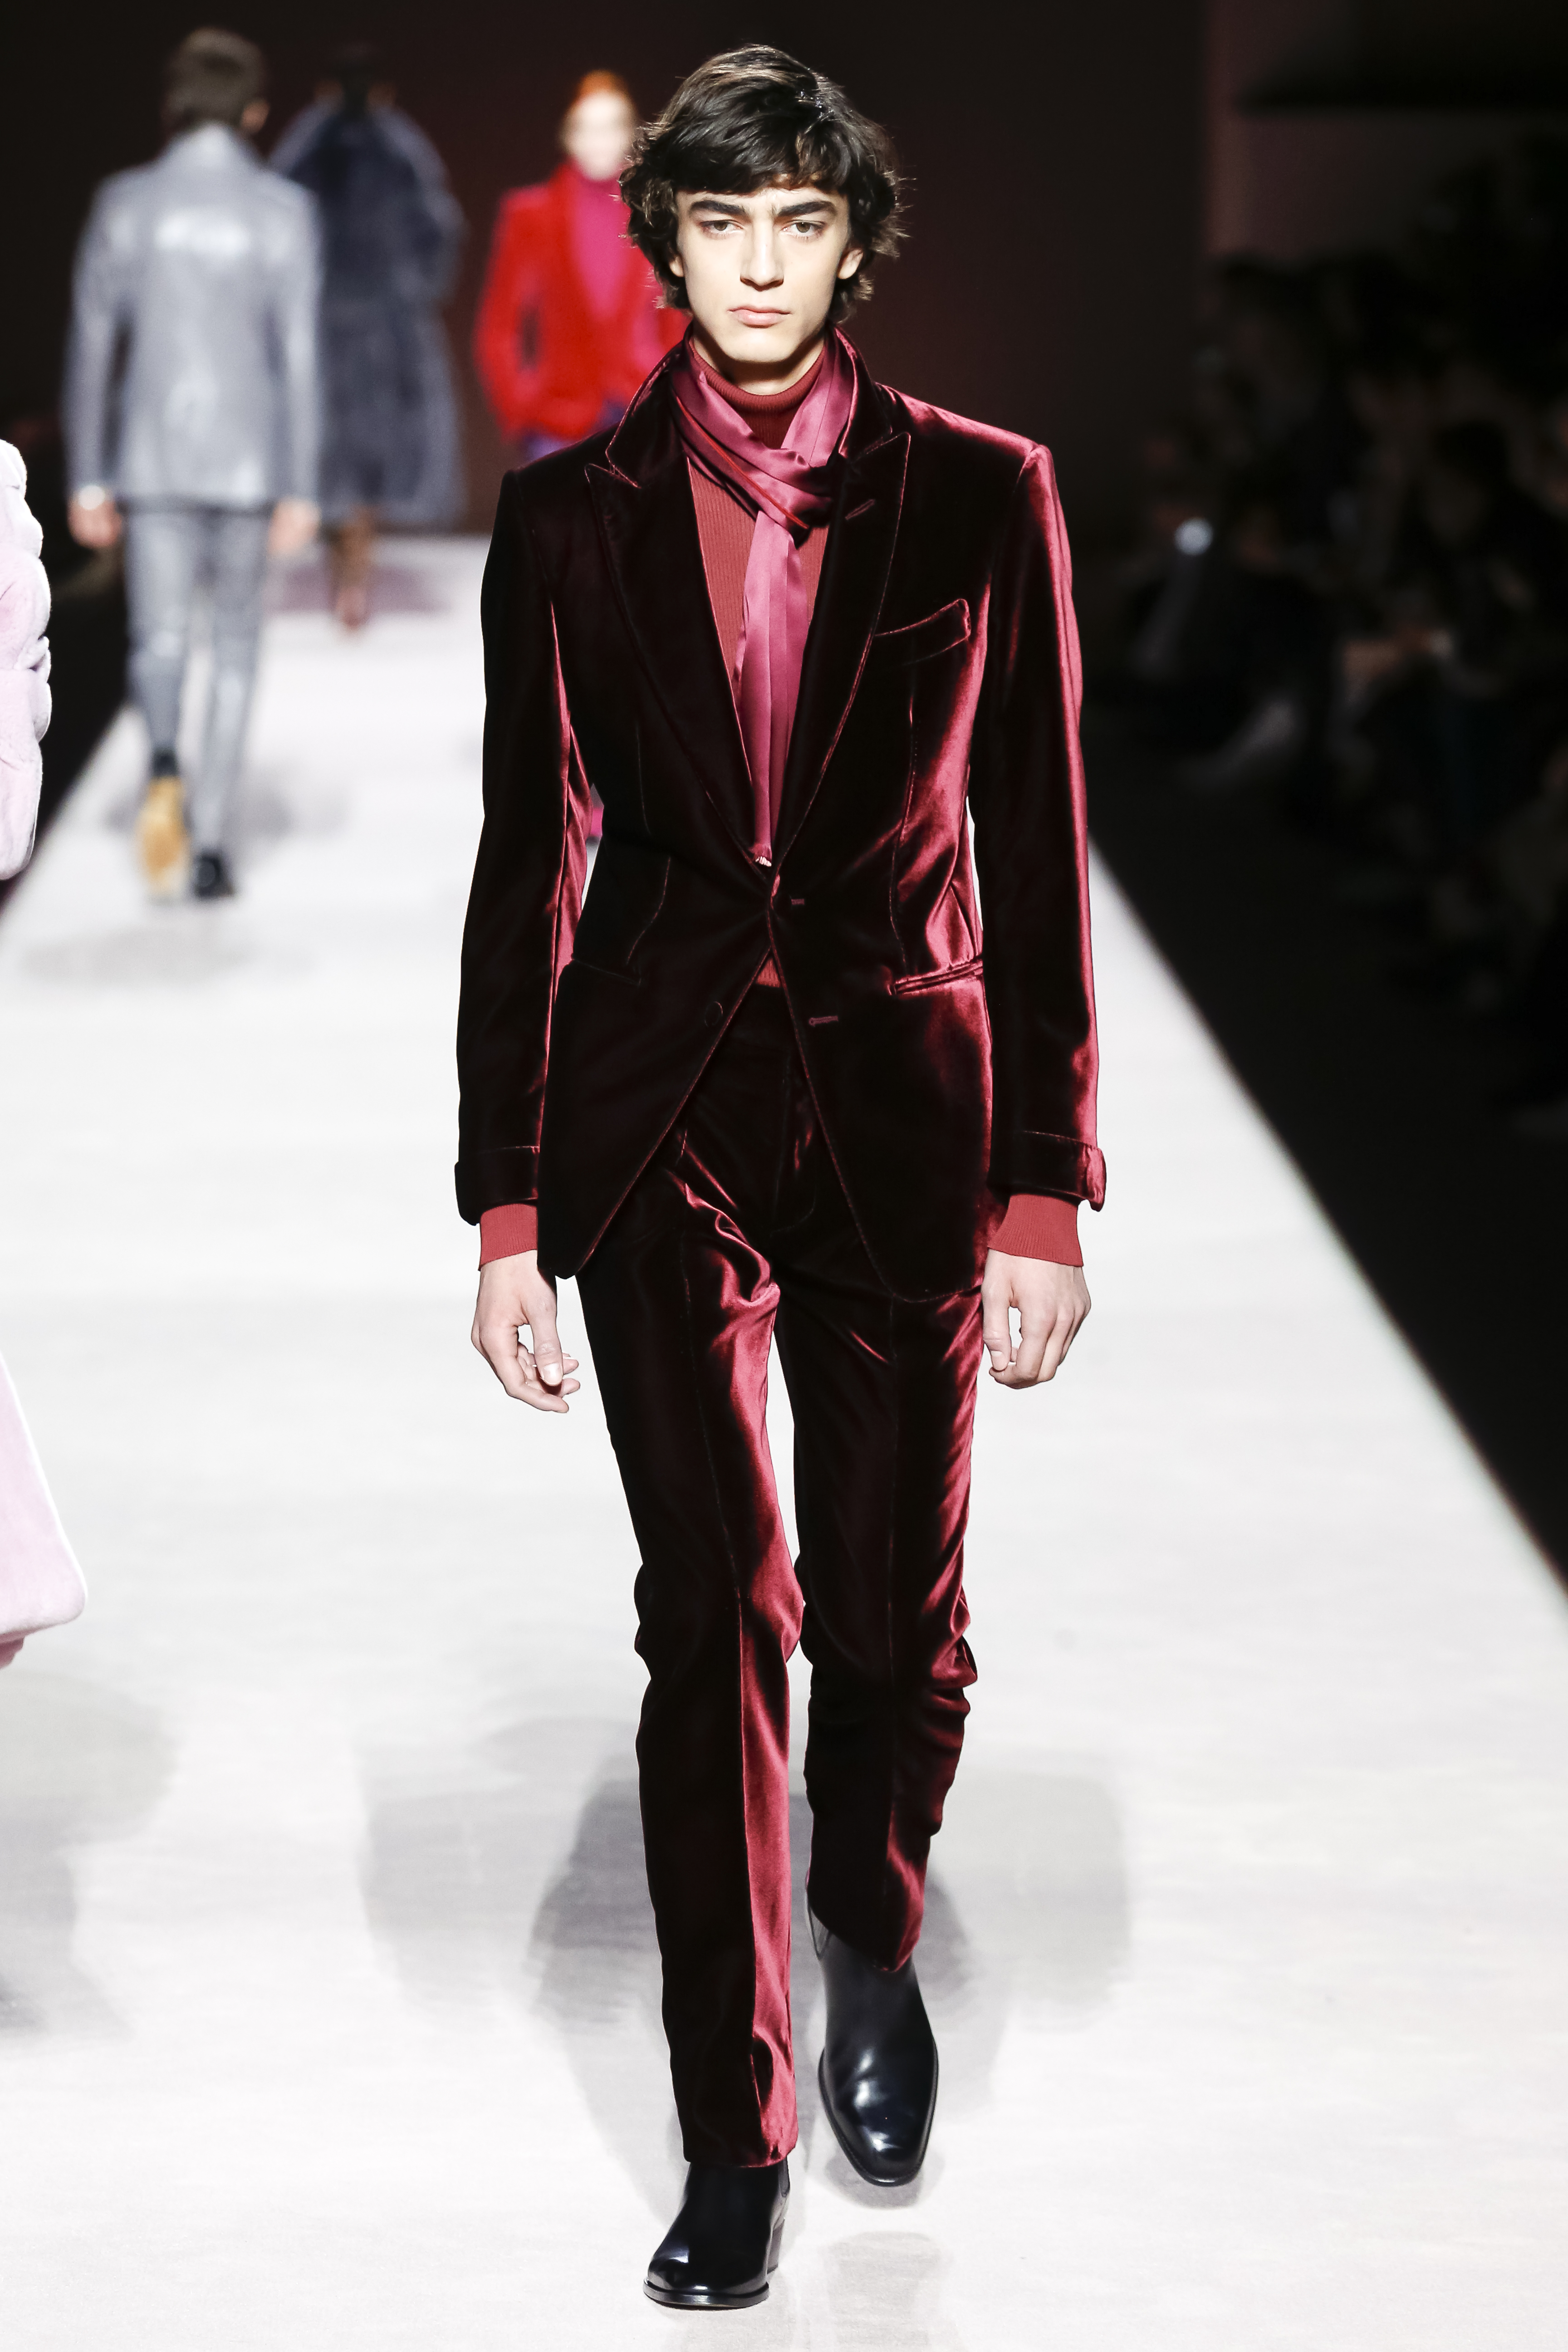 bf720196438 Tom Ford fall 2019 collection Photo by Courtesy of Tom Ford